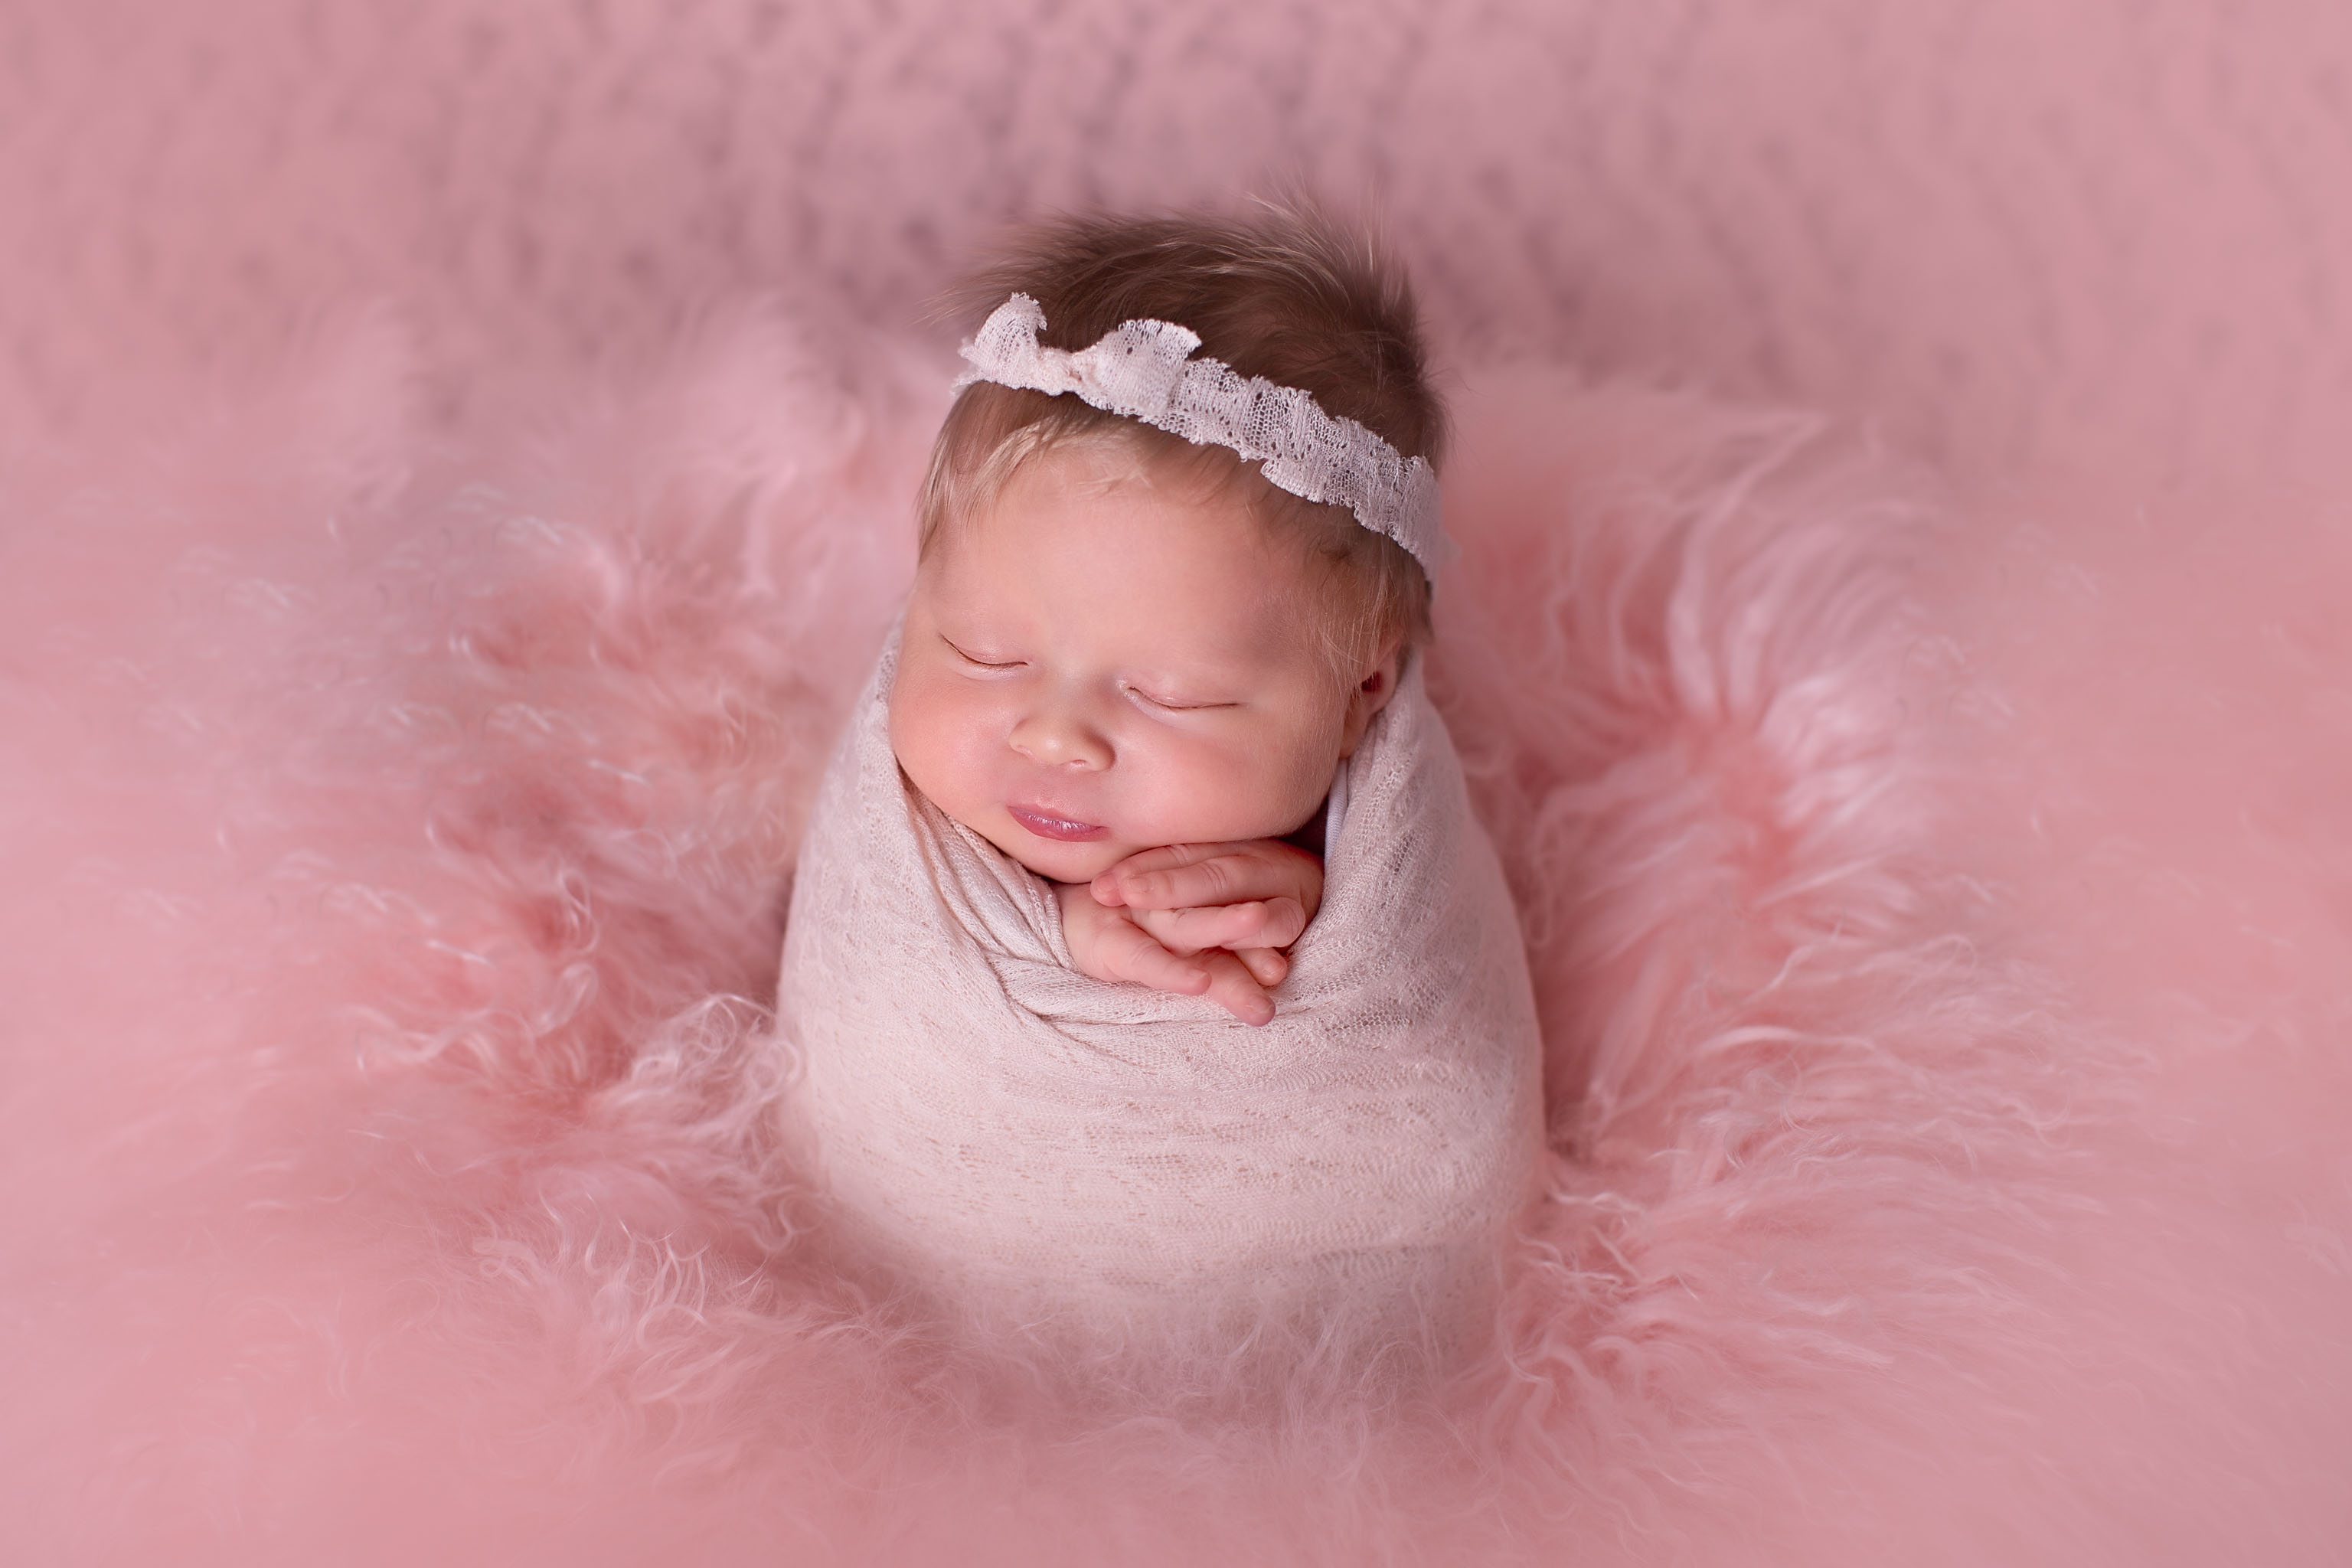 Image of newborn baby girl wrapped up and posed for a newborn session